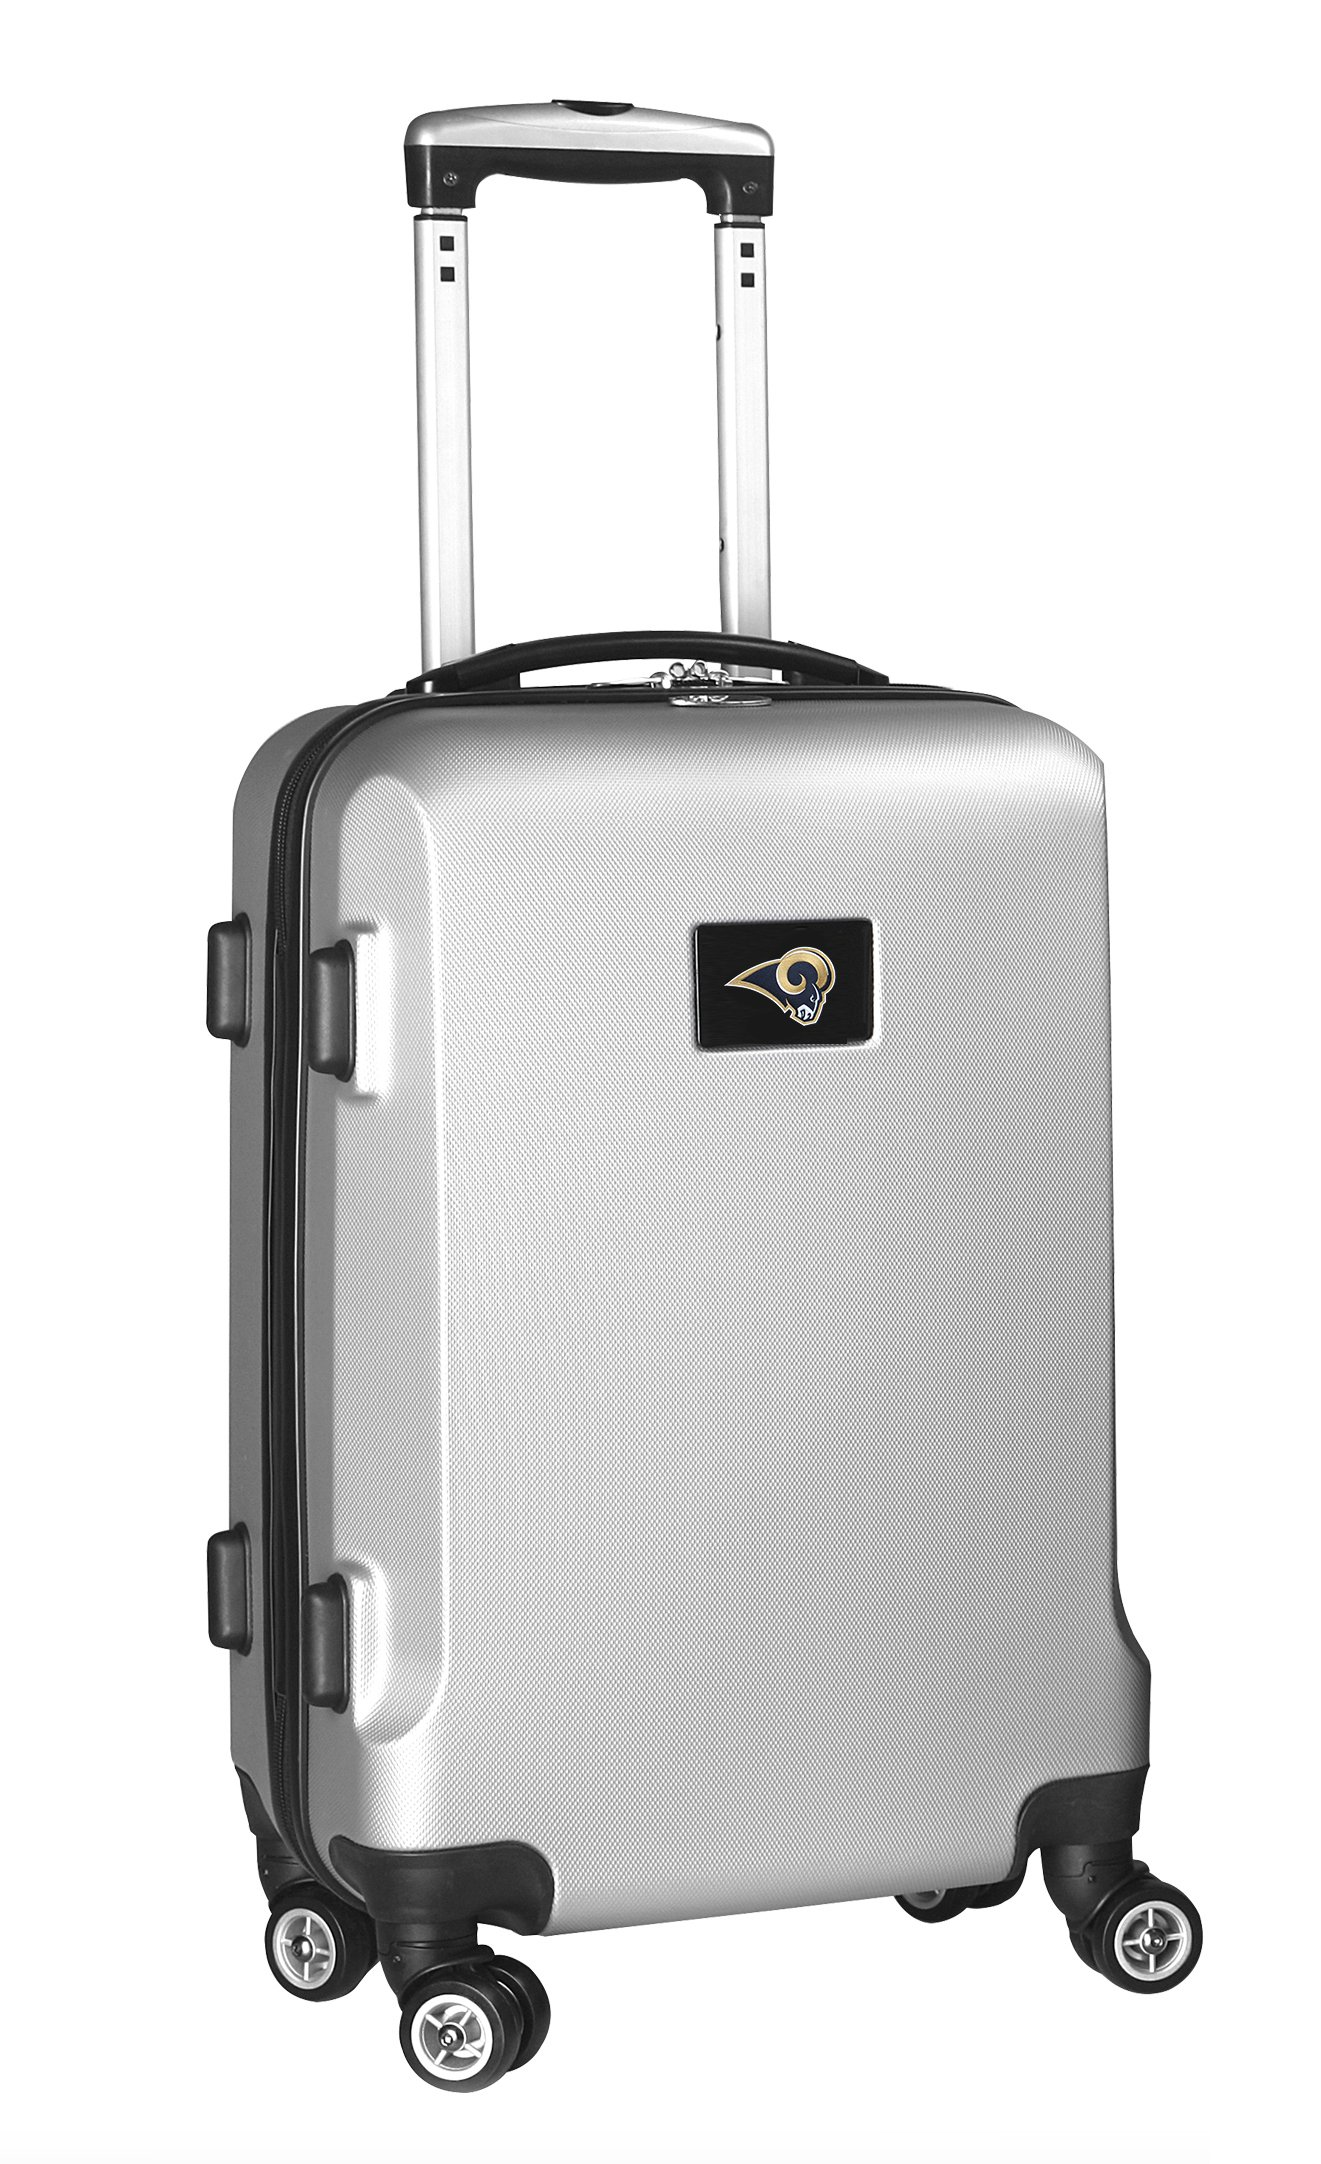 NFL St. Louis Rams Hardcase Domestic Carry-On Spinner, Silver, 20-Inch